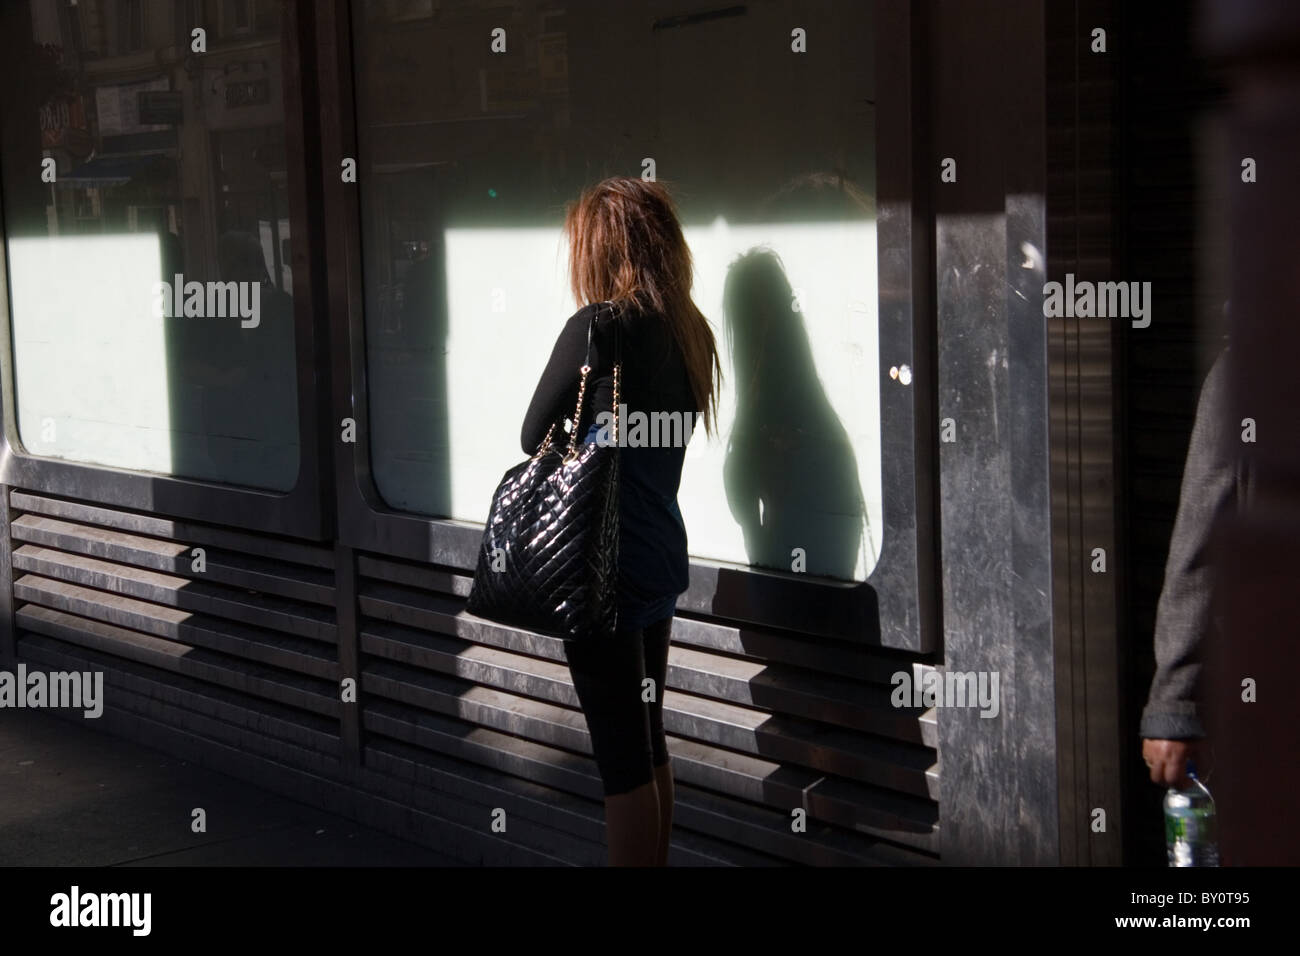 Back view of a woman in a London street with shadow; a man in an overcoat passes by - Stock Image